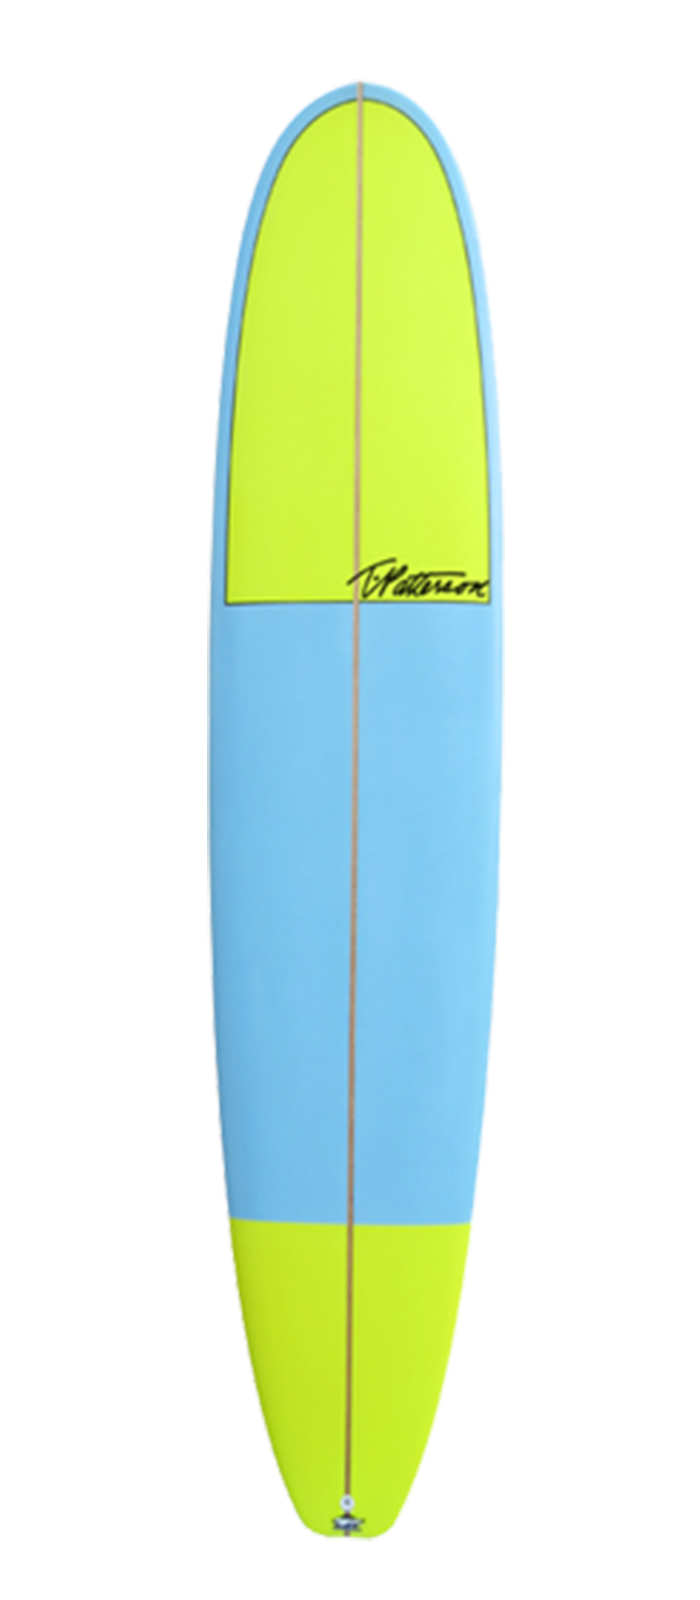 Cali Noserider surfboard model bottom